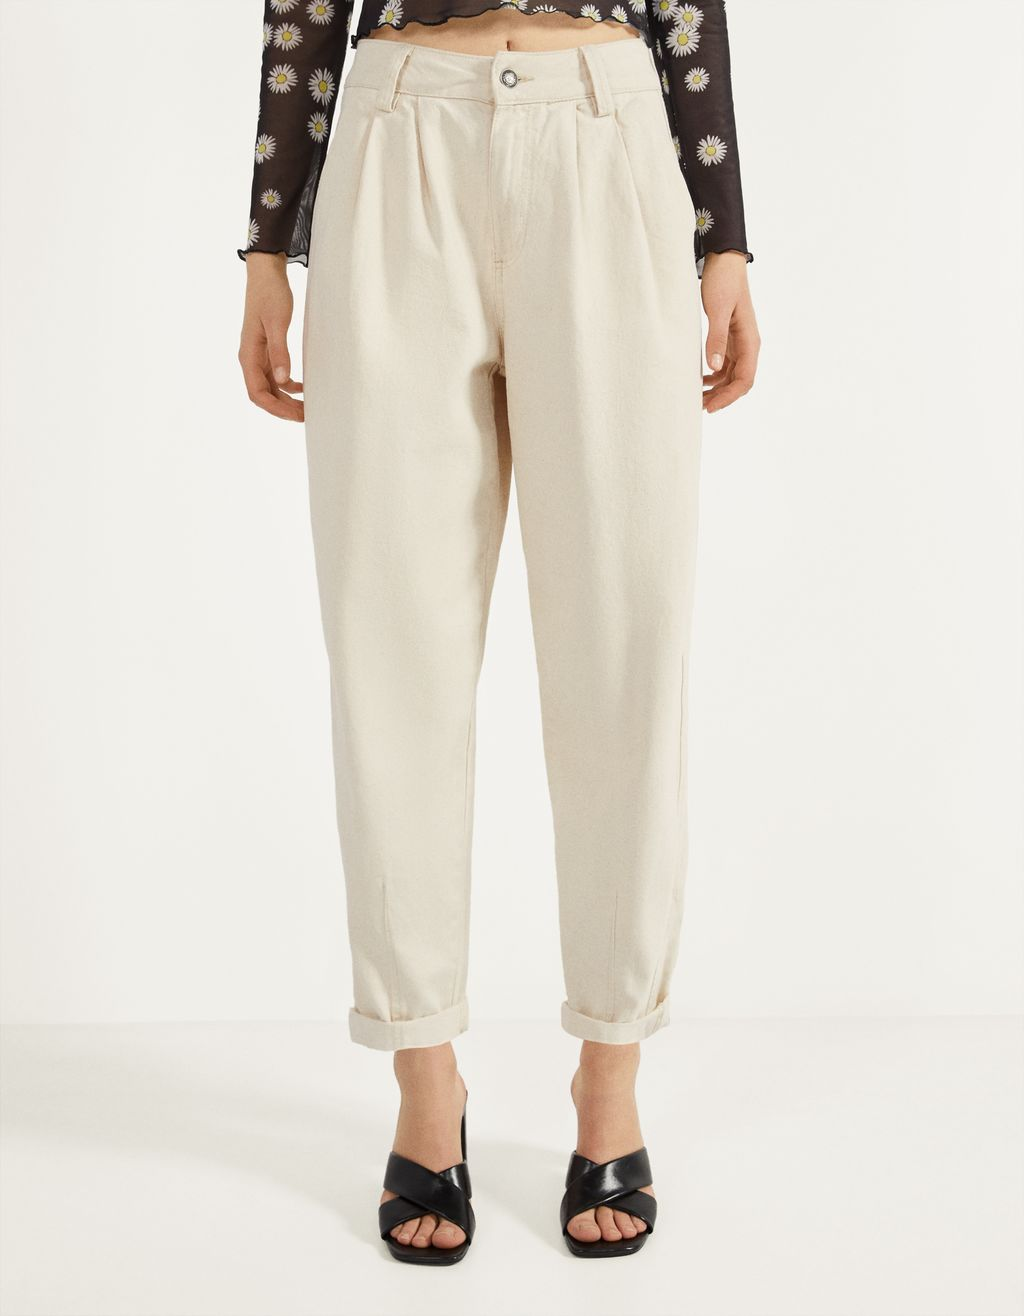 Balloon Fit trousers